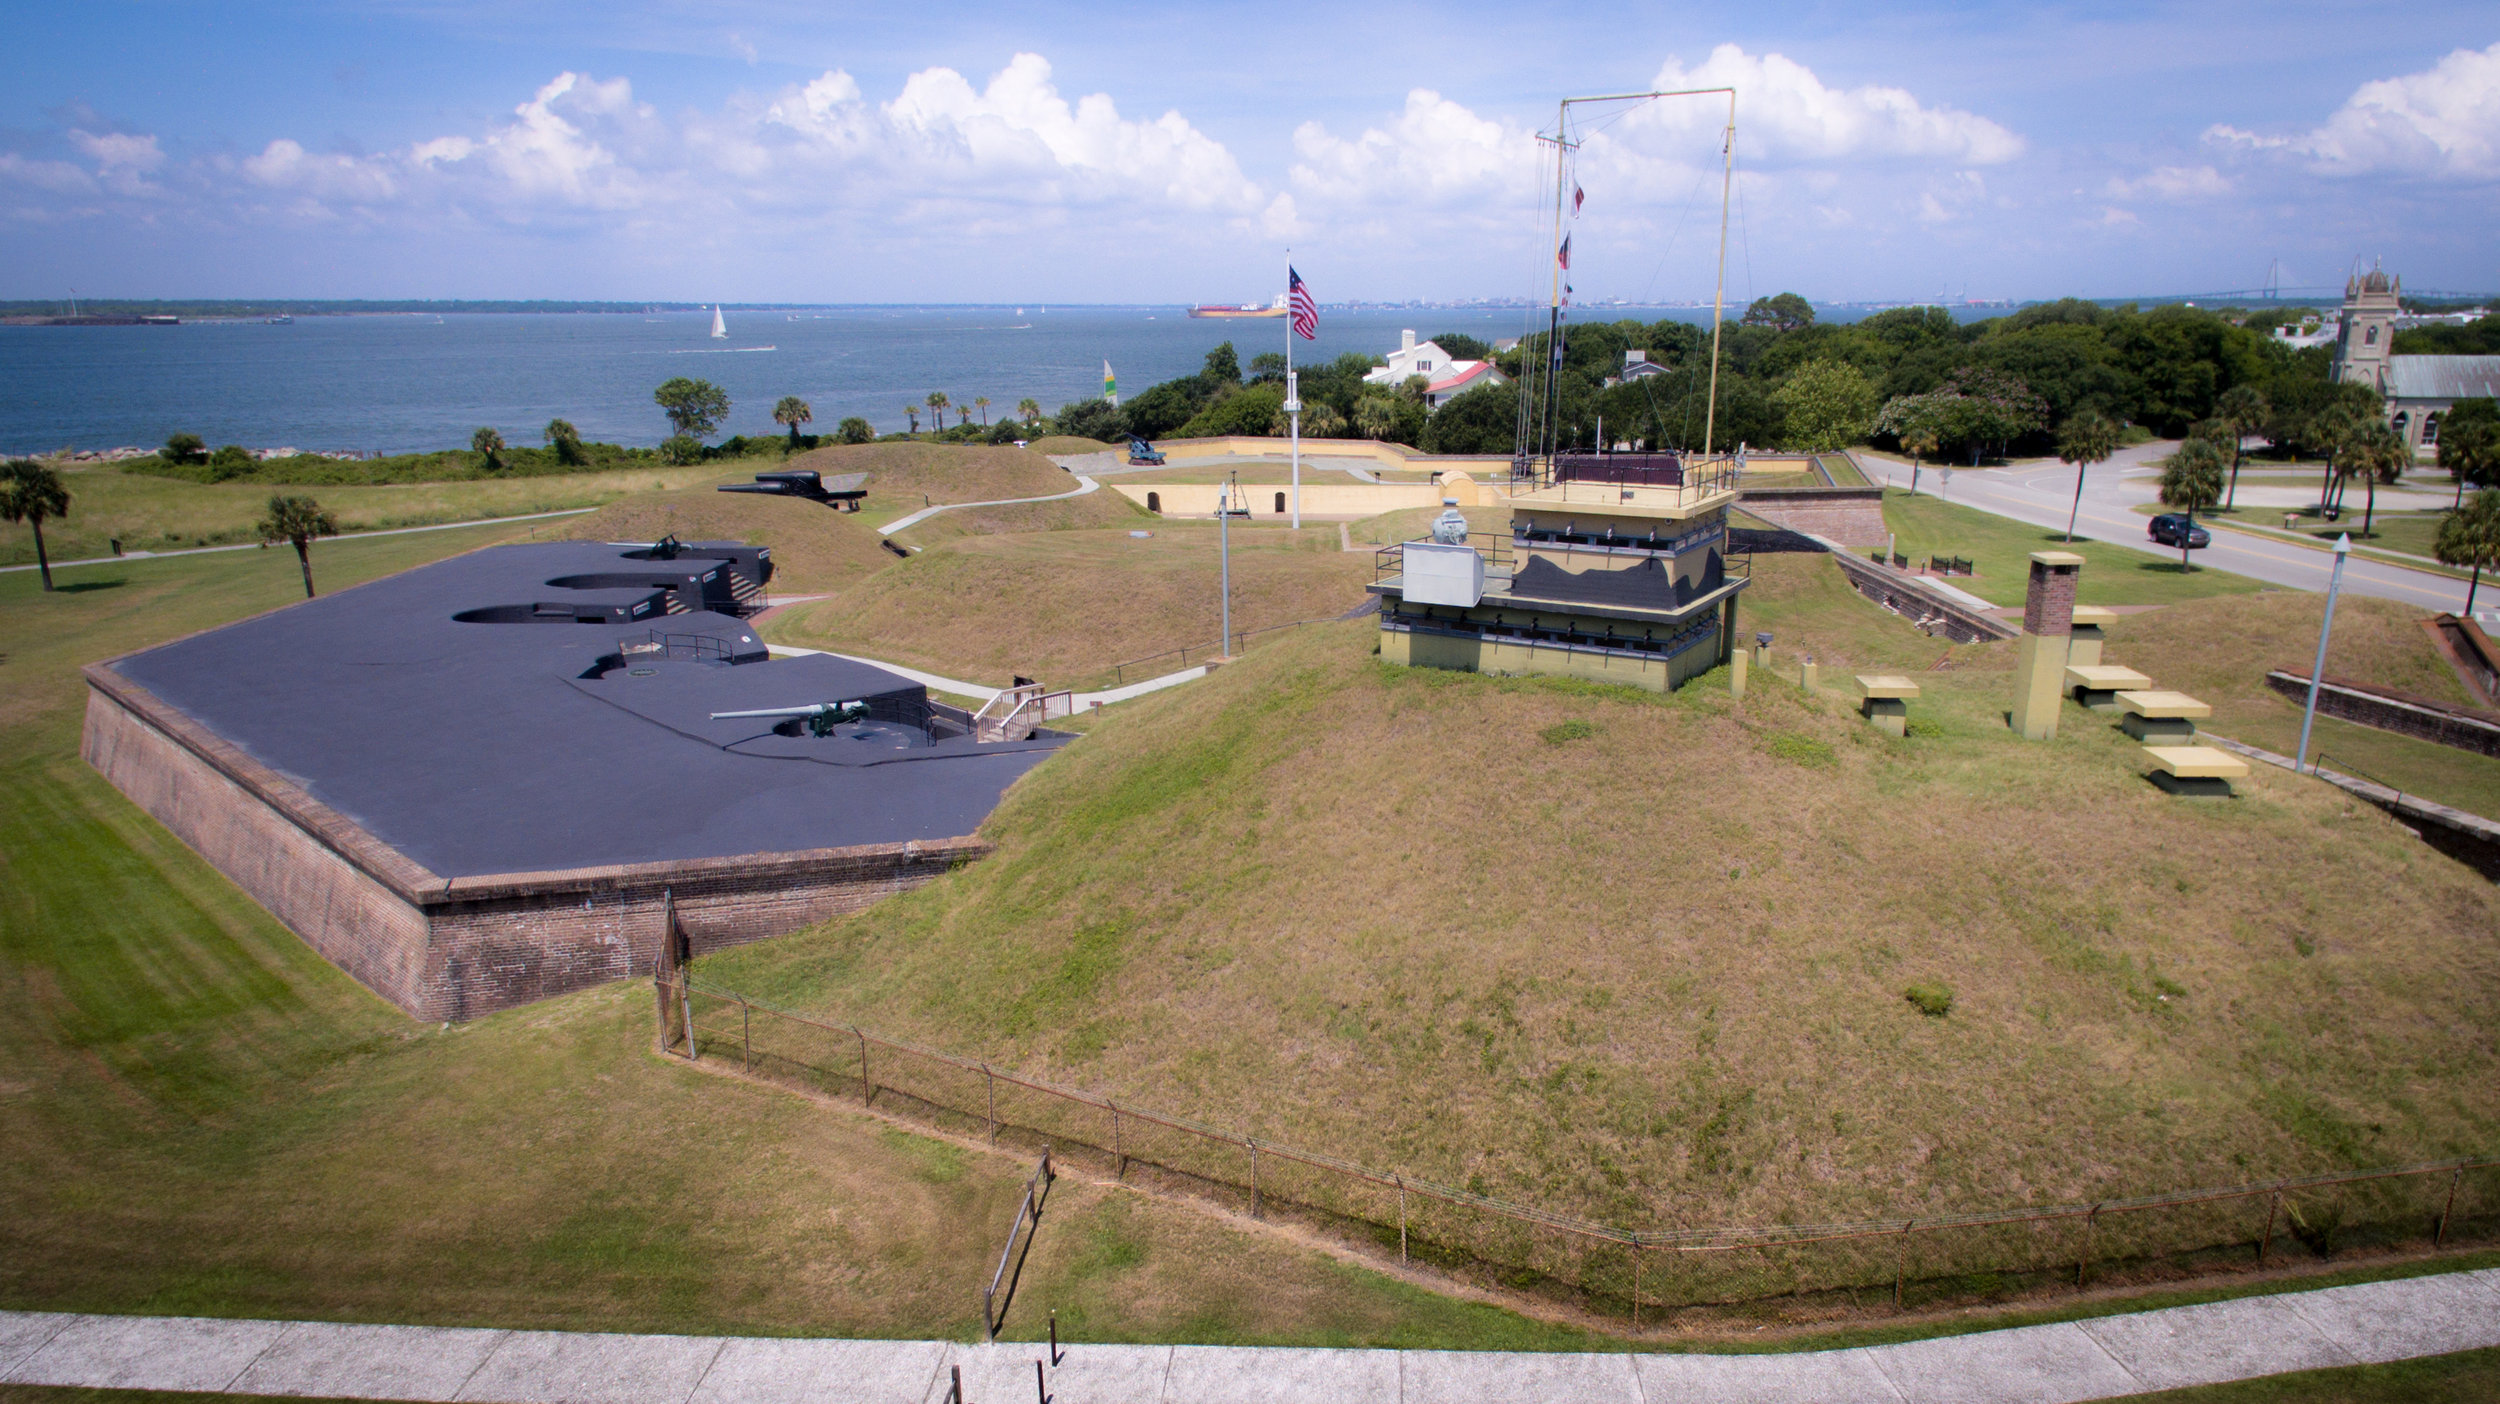 Fort Moultrie to Fort Sumter